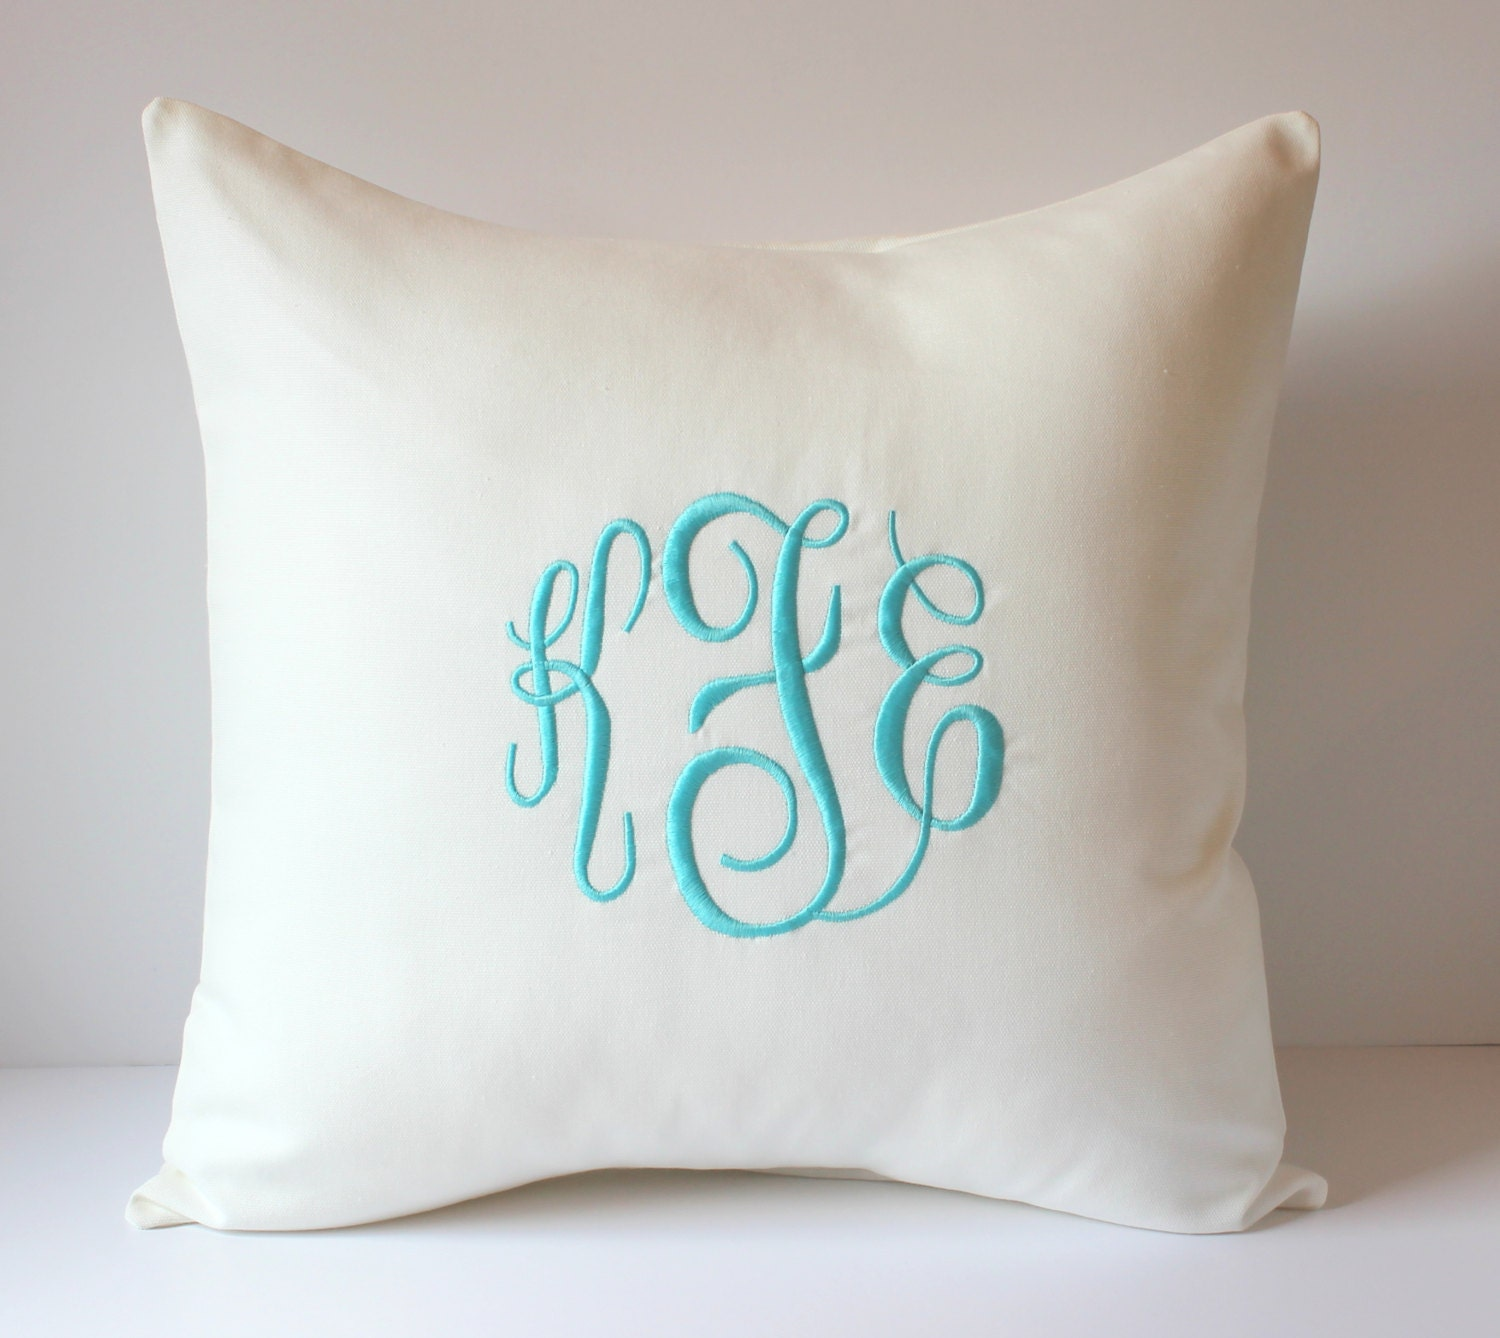 Decorative Pillows With Monogram : WEDDING GIFT. Monogram Decorative Pillow Cover 18 X 18. Gift